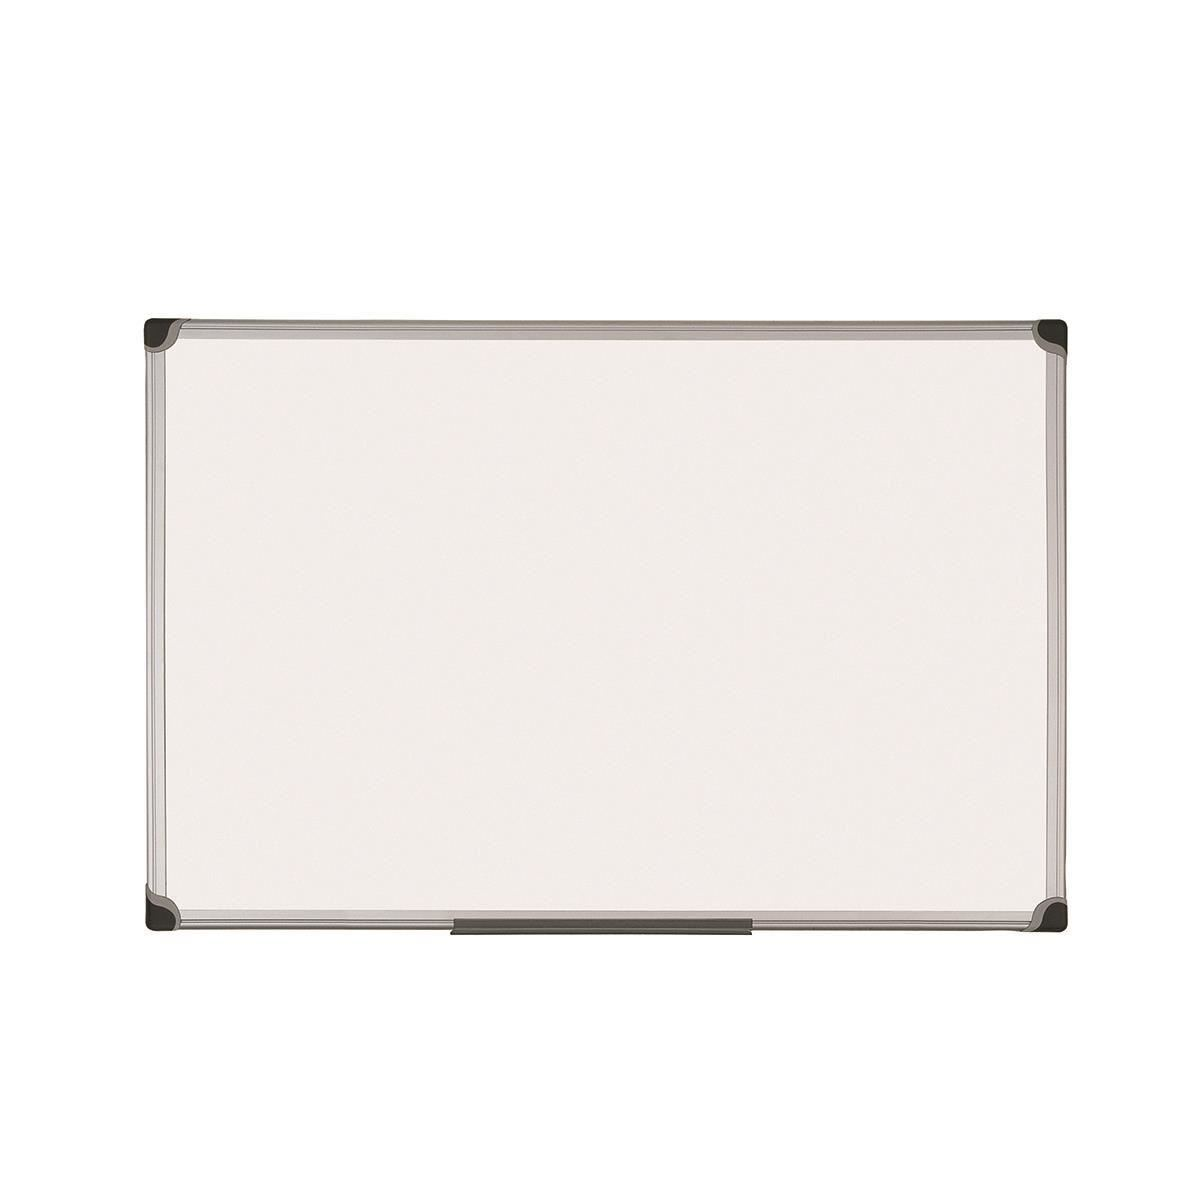 tabla whiteboard magnetica bi office 120 x 90 cm suprafata metalica lacuita ovm paper. Black Bedroom Furniture Sets. Home Design Ideas